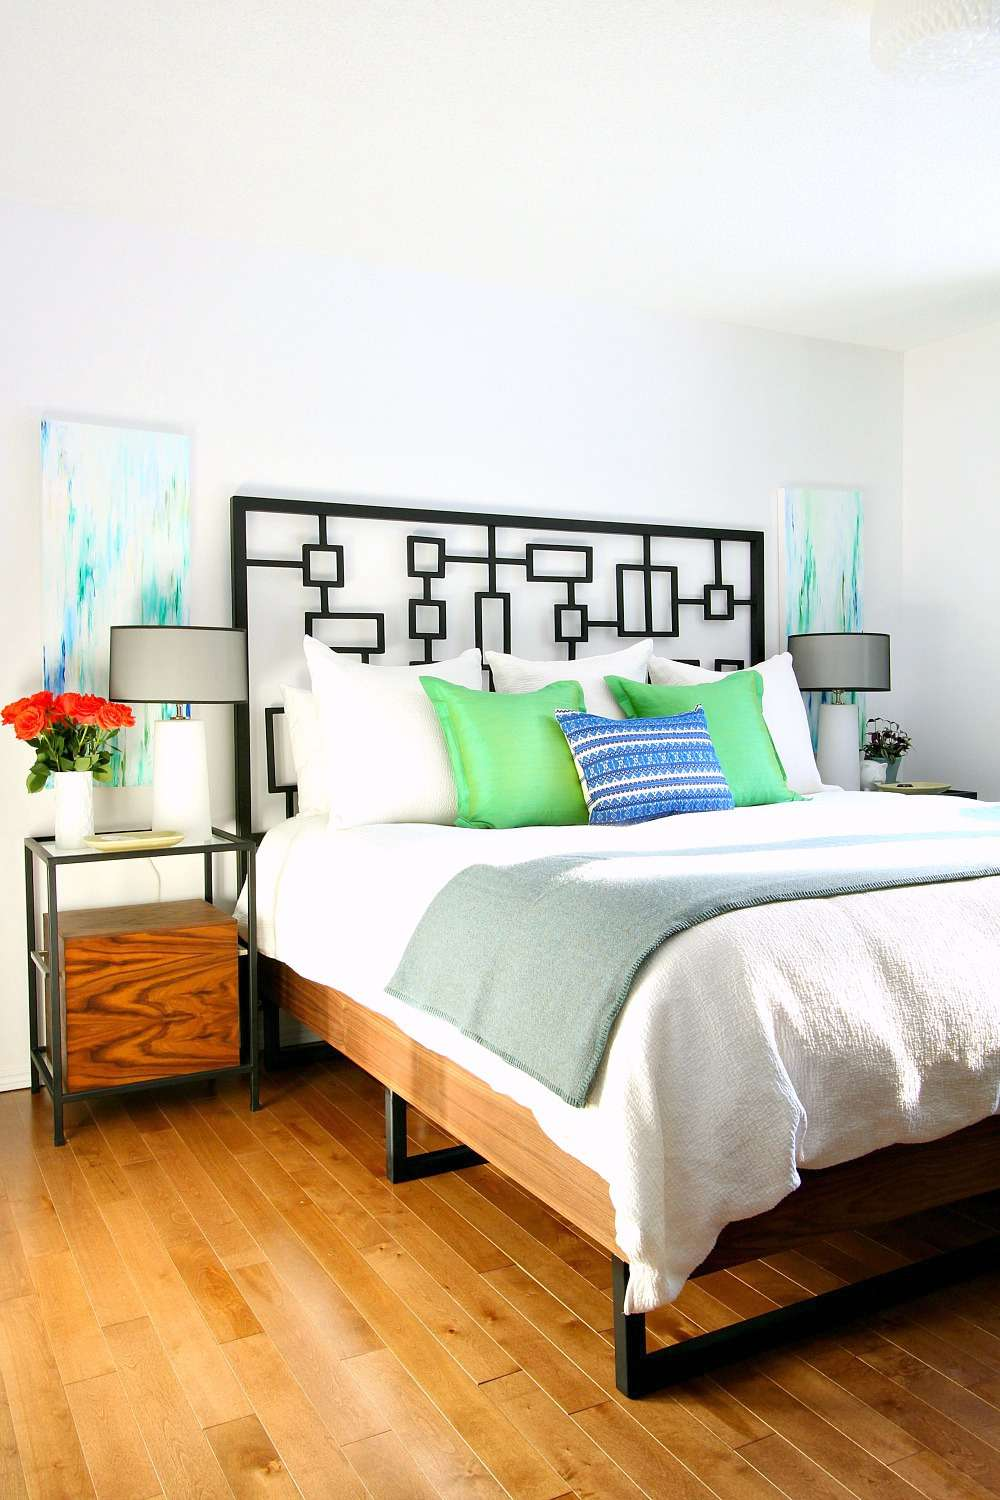 A wood and iron bed in a bedroom